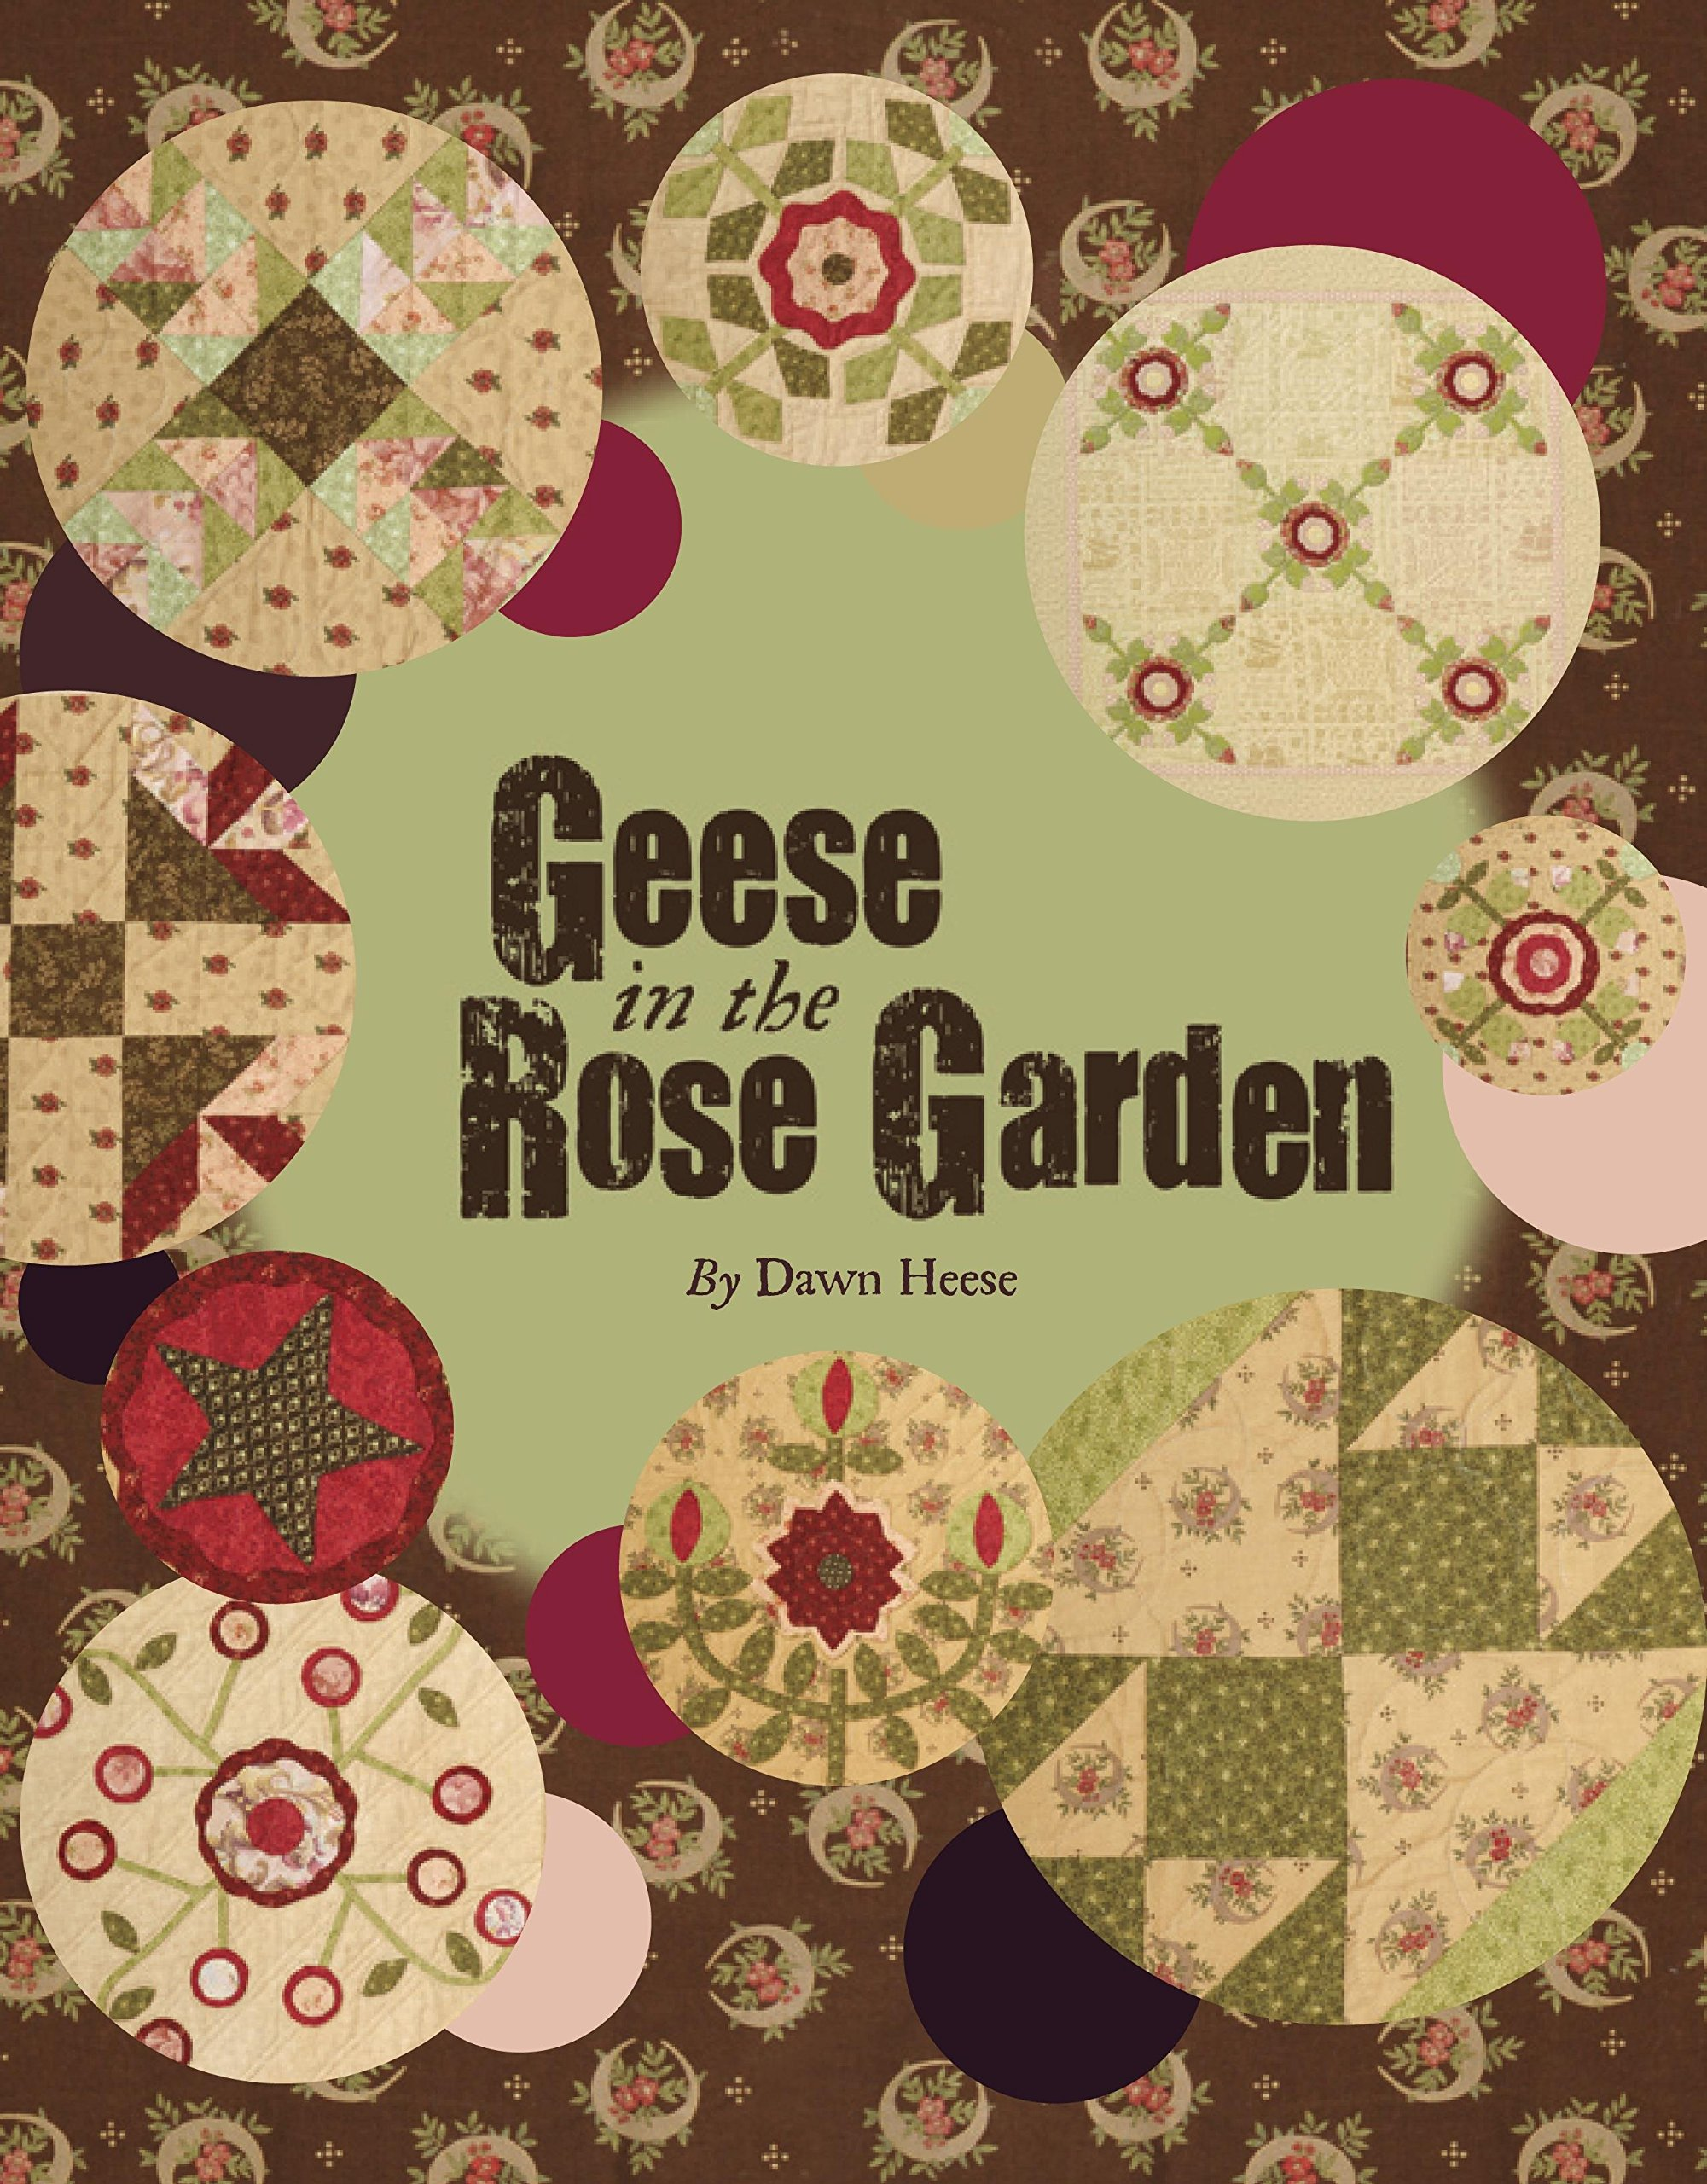 Outstanding Buy Geese In The Rose Garden Book Online At Low Prices In India  With Engaging Buy Geese In The Rose Garden Book Online At Low Prices In India  Geese In The  Rose Garden Reviews  Ratings  Amazonin With Extraordinary Knight Garden Centre Also Garden Wall Lighting In Addition Plants Vs Zombies Garden Warfare Trailer And Country Garden Services As Well As Garden Pines Additionally Ashton Garden Centre From Amazonin With   Engaging Buy Geese In The Rose Garden Book Online At Low Prices In India  With Extraordinary Buy Geese In The Rose Garden Book Online At Low Prices In India  Geese In The  Rose Garden Reviews  Ratings  Amazonin And Outstanding Knight Garden Centre Also Garden Wall Lighting In Addition Plants Vs Zombies Garden Warfare Trailer From Amazonin